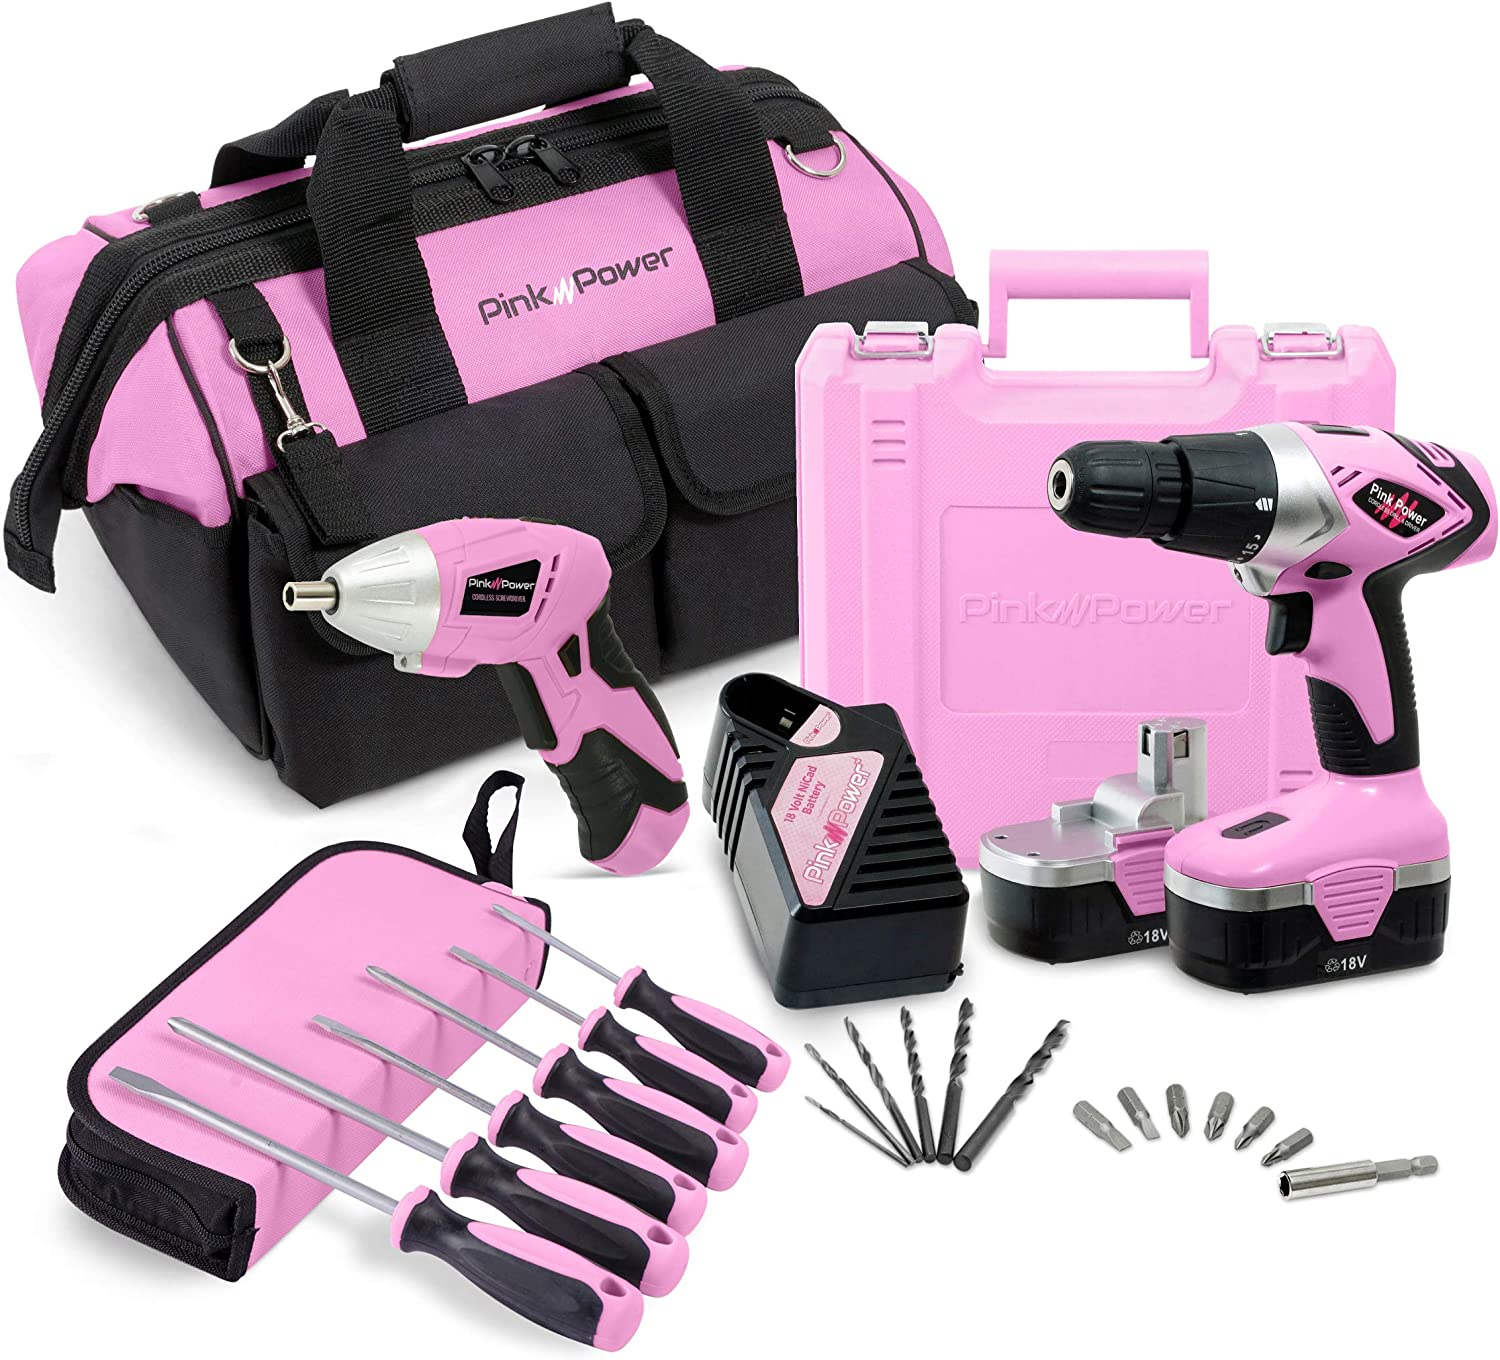 Pink Power 18V Cordless Drill Driver Electric Screwdriver Combo Kit with Tool Bag